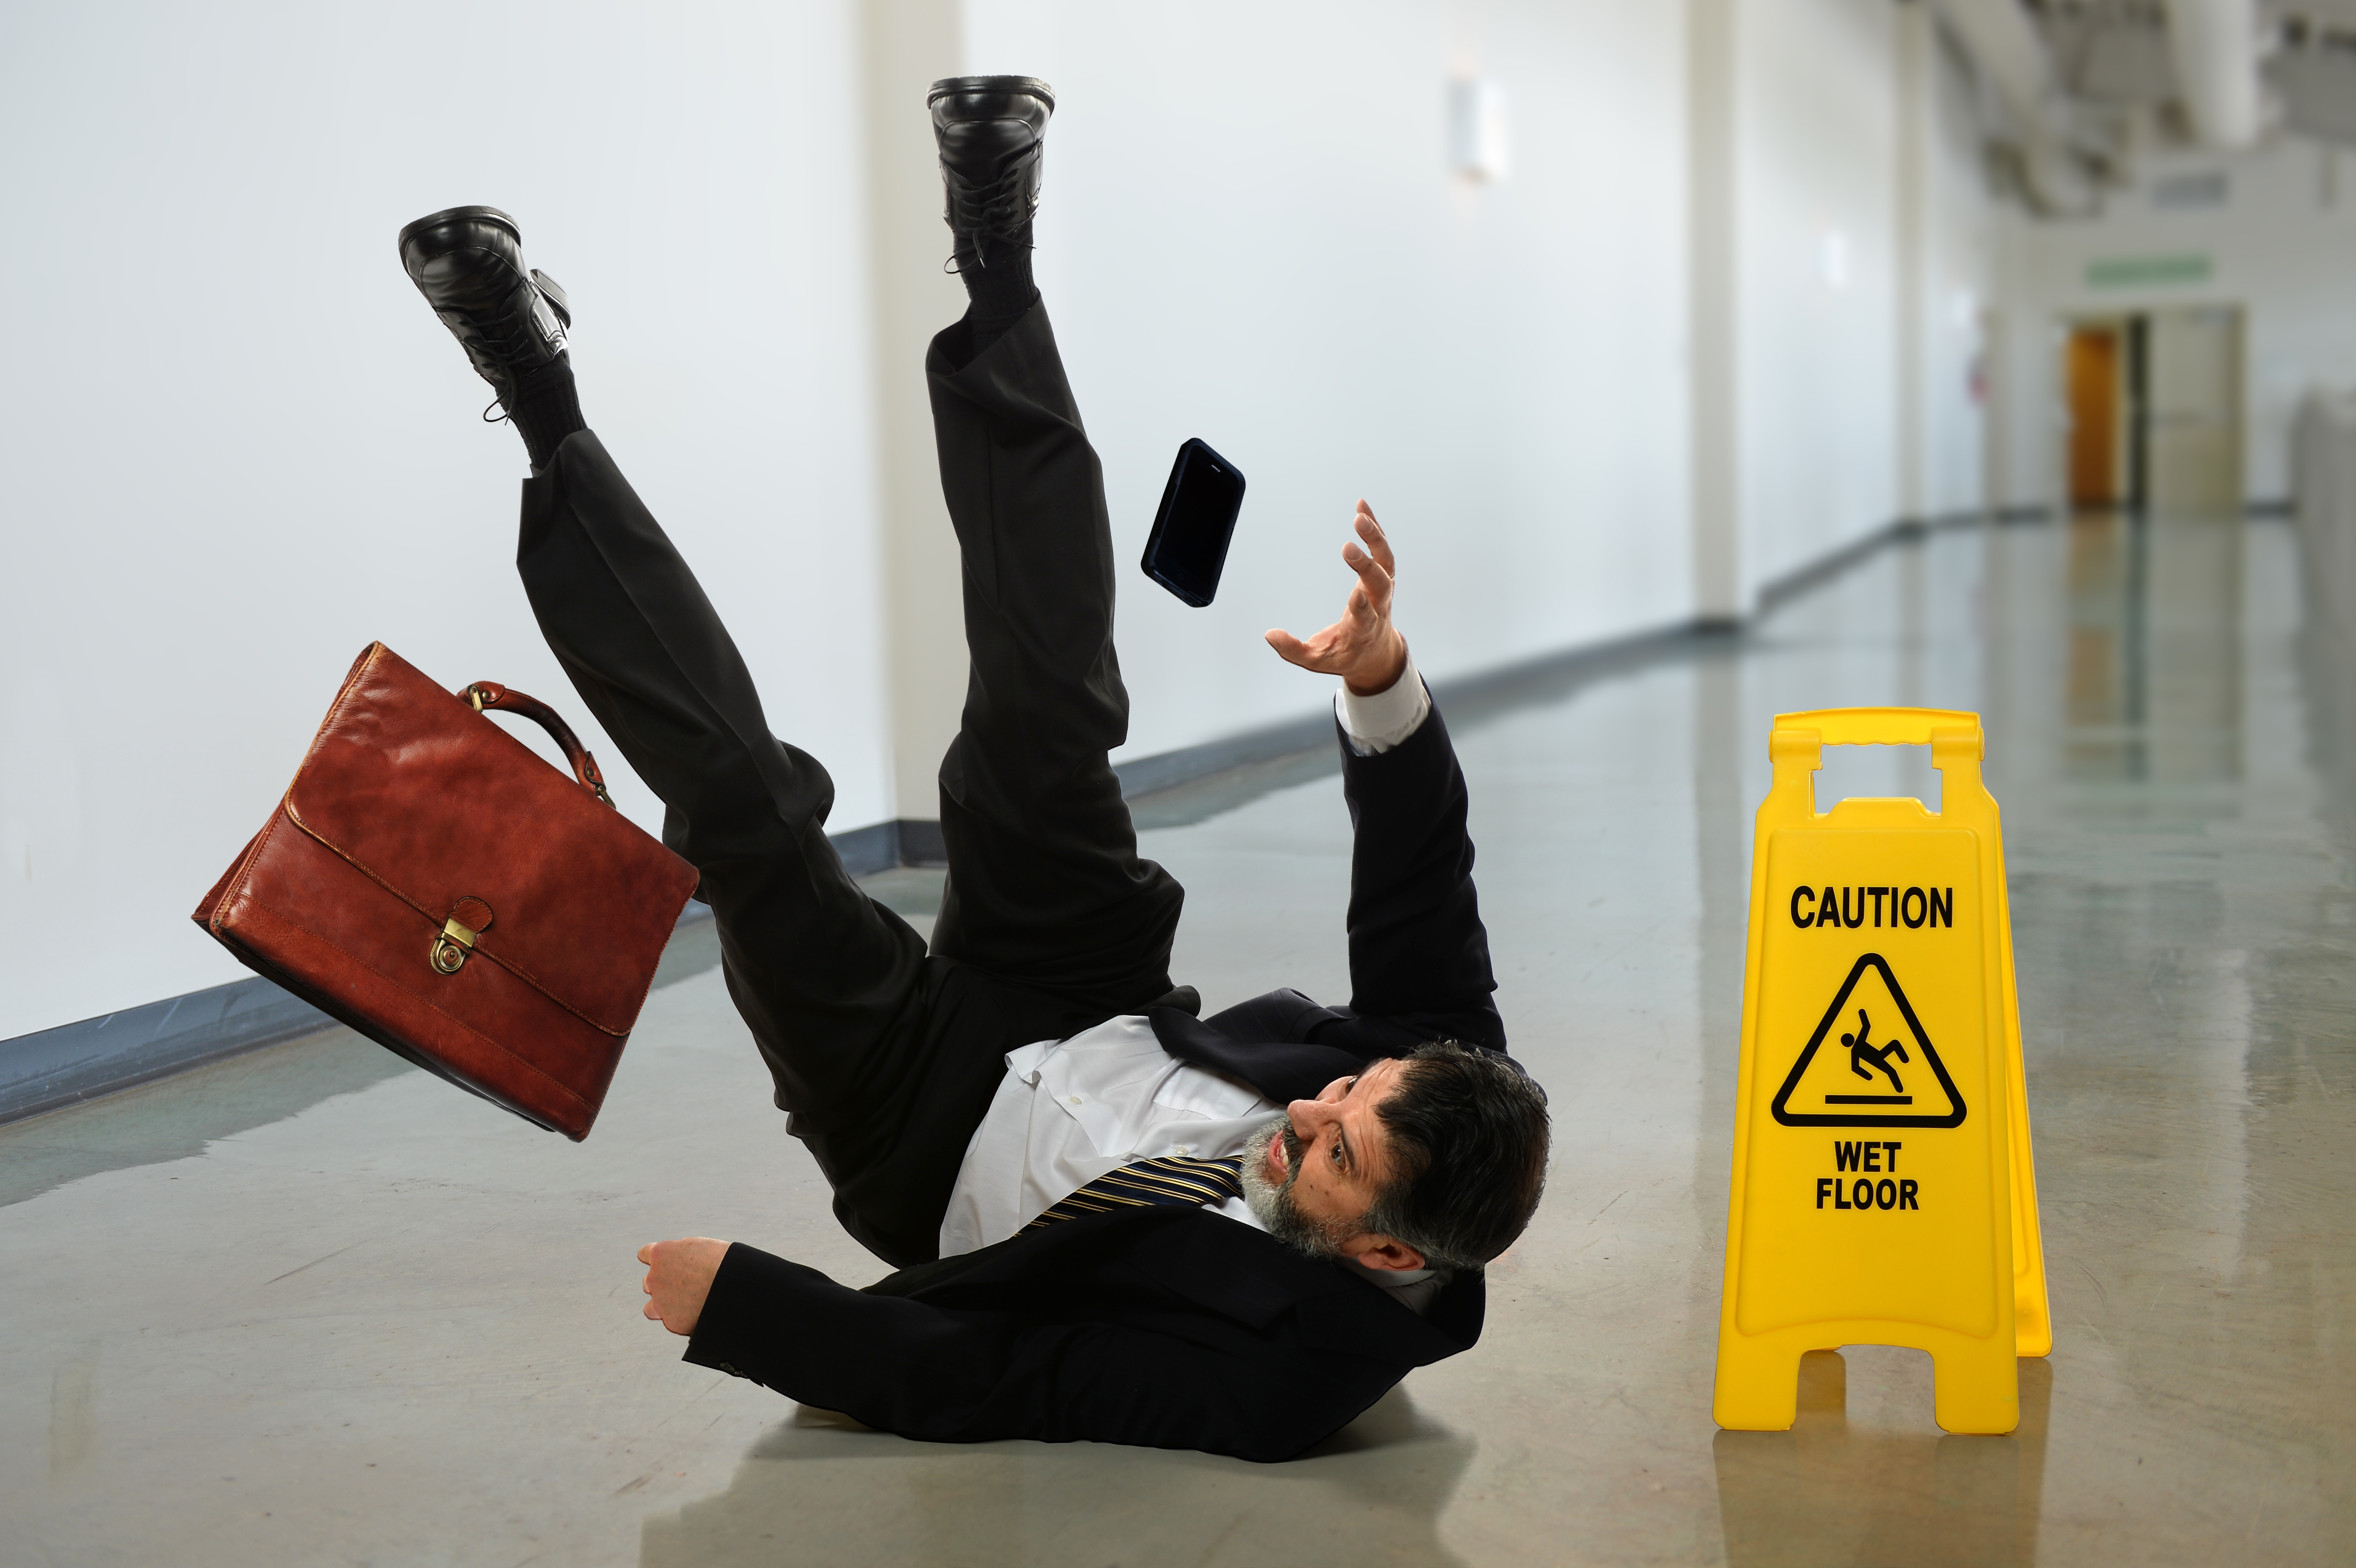 Vancouver Slip and Fall Lawyer | Tim Louis & Company Law in Vancouver